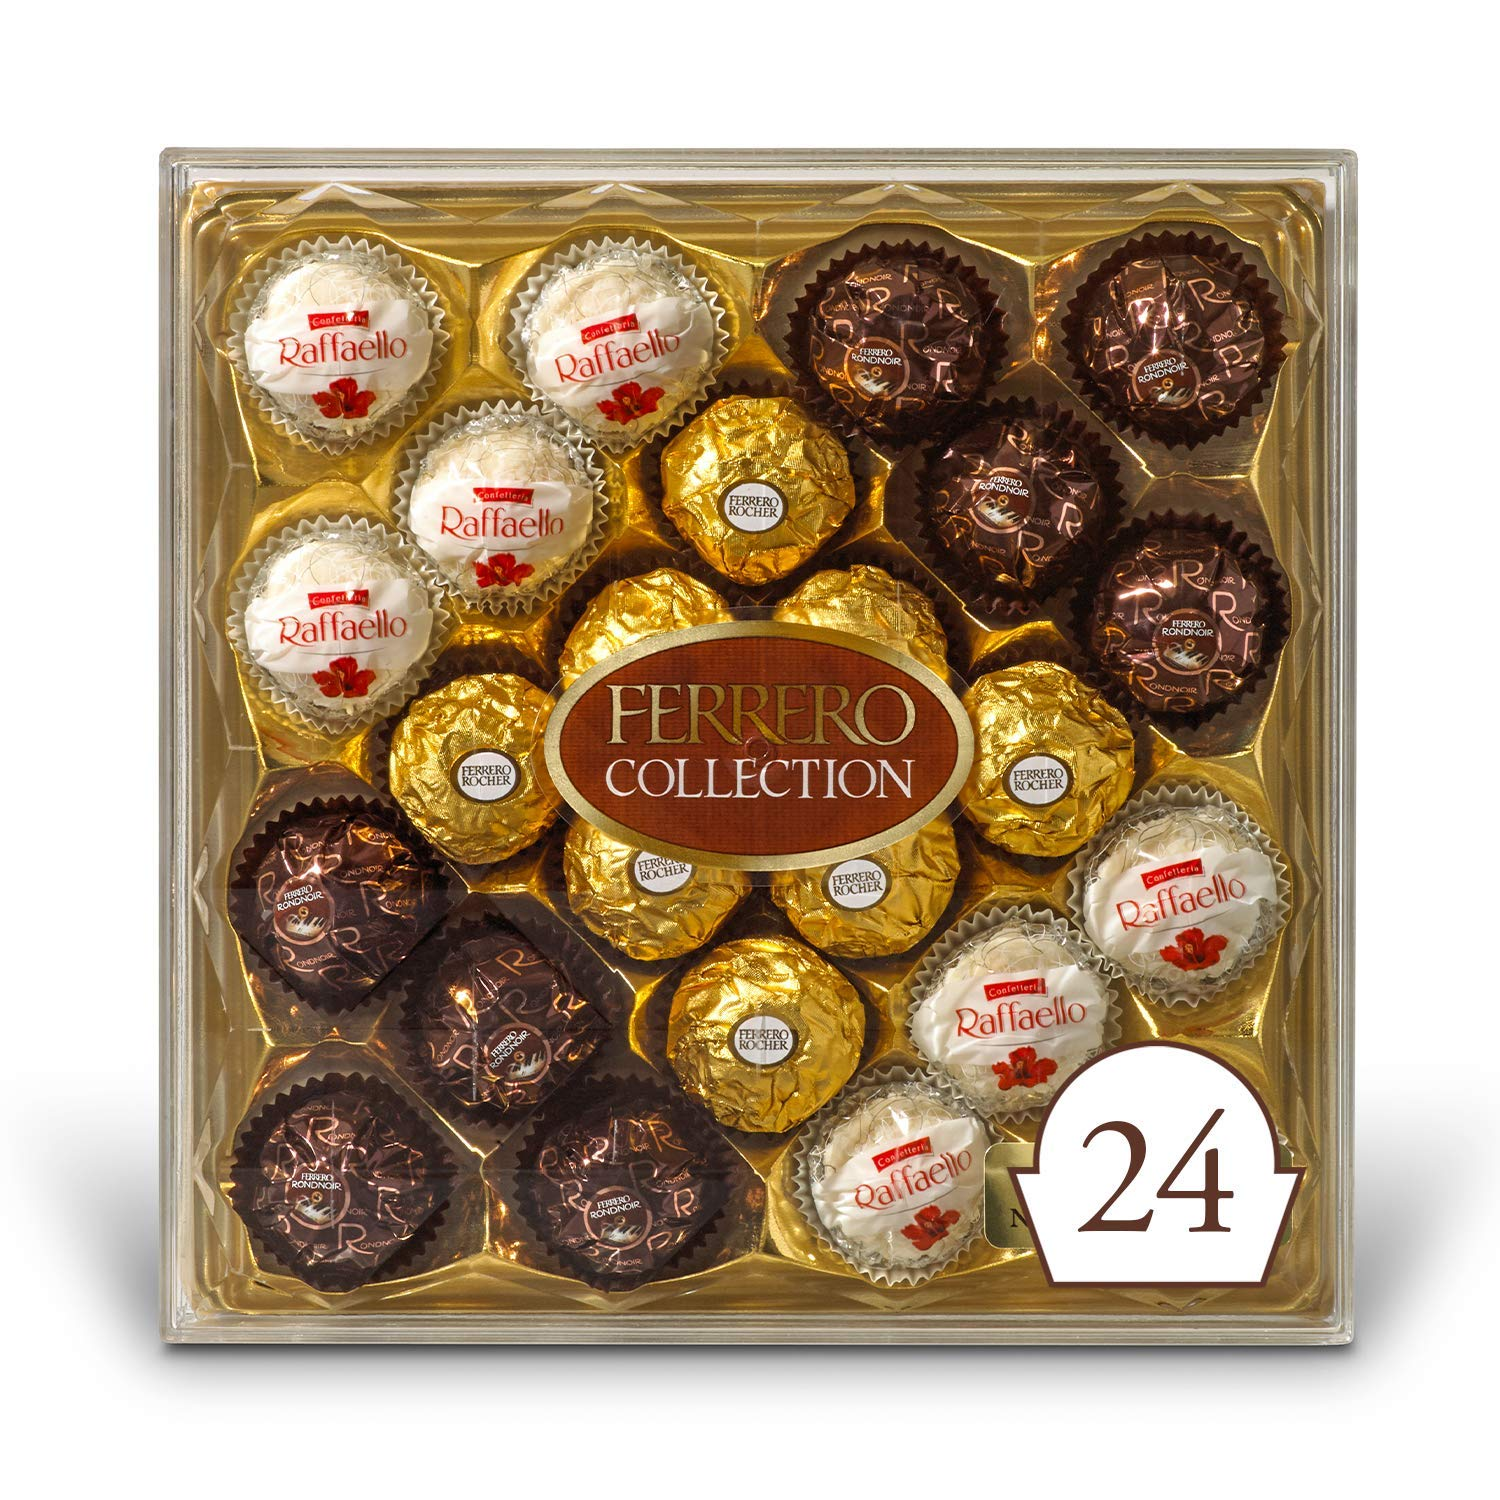 Ferrero Rocher Collection, Fine Hazelnut Milk Chocolates, 24 Count Gift Box, Assorted Coconut Candy and Chocolates, 9.1 Oz, Perfect Mother's Day Gift for Mom